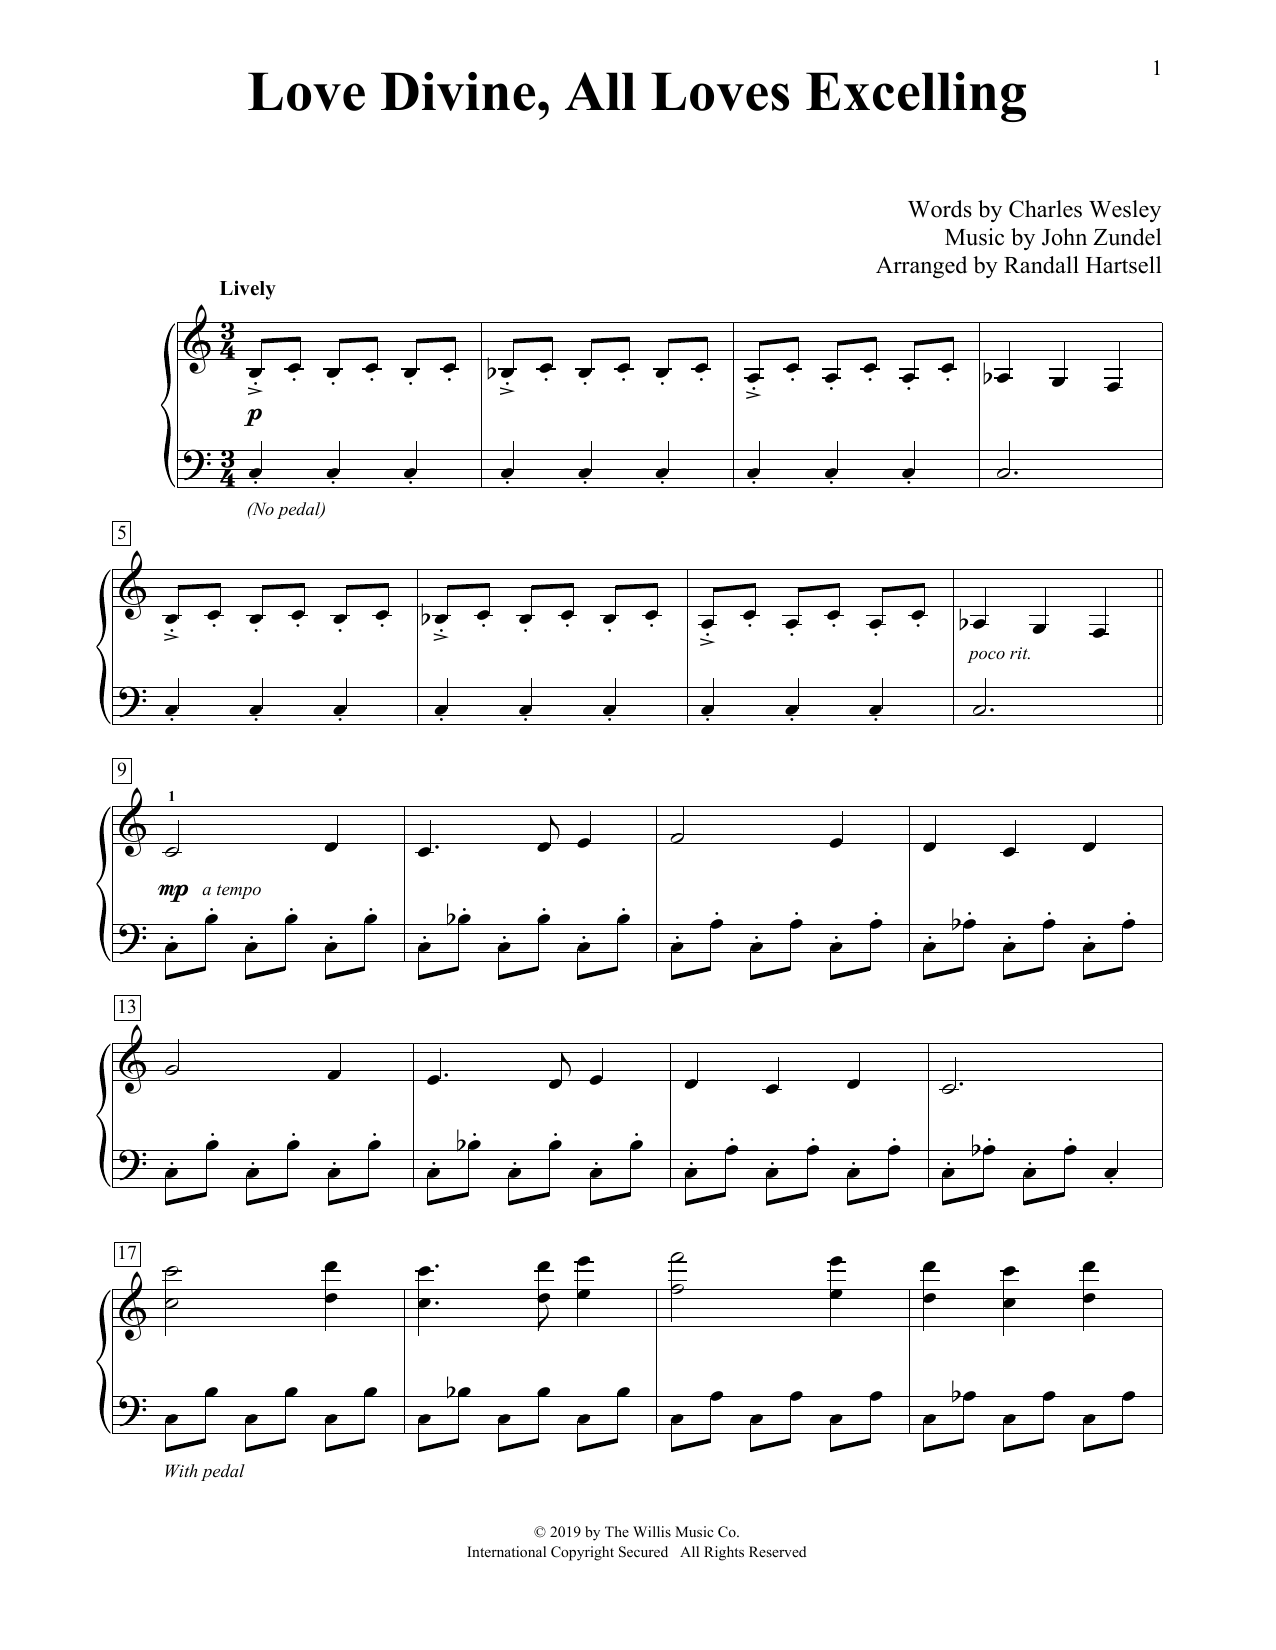 Love Divine, All Loves Excelling (arr. Randall Hartsell) (Educational Piano)